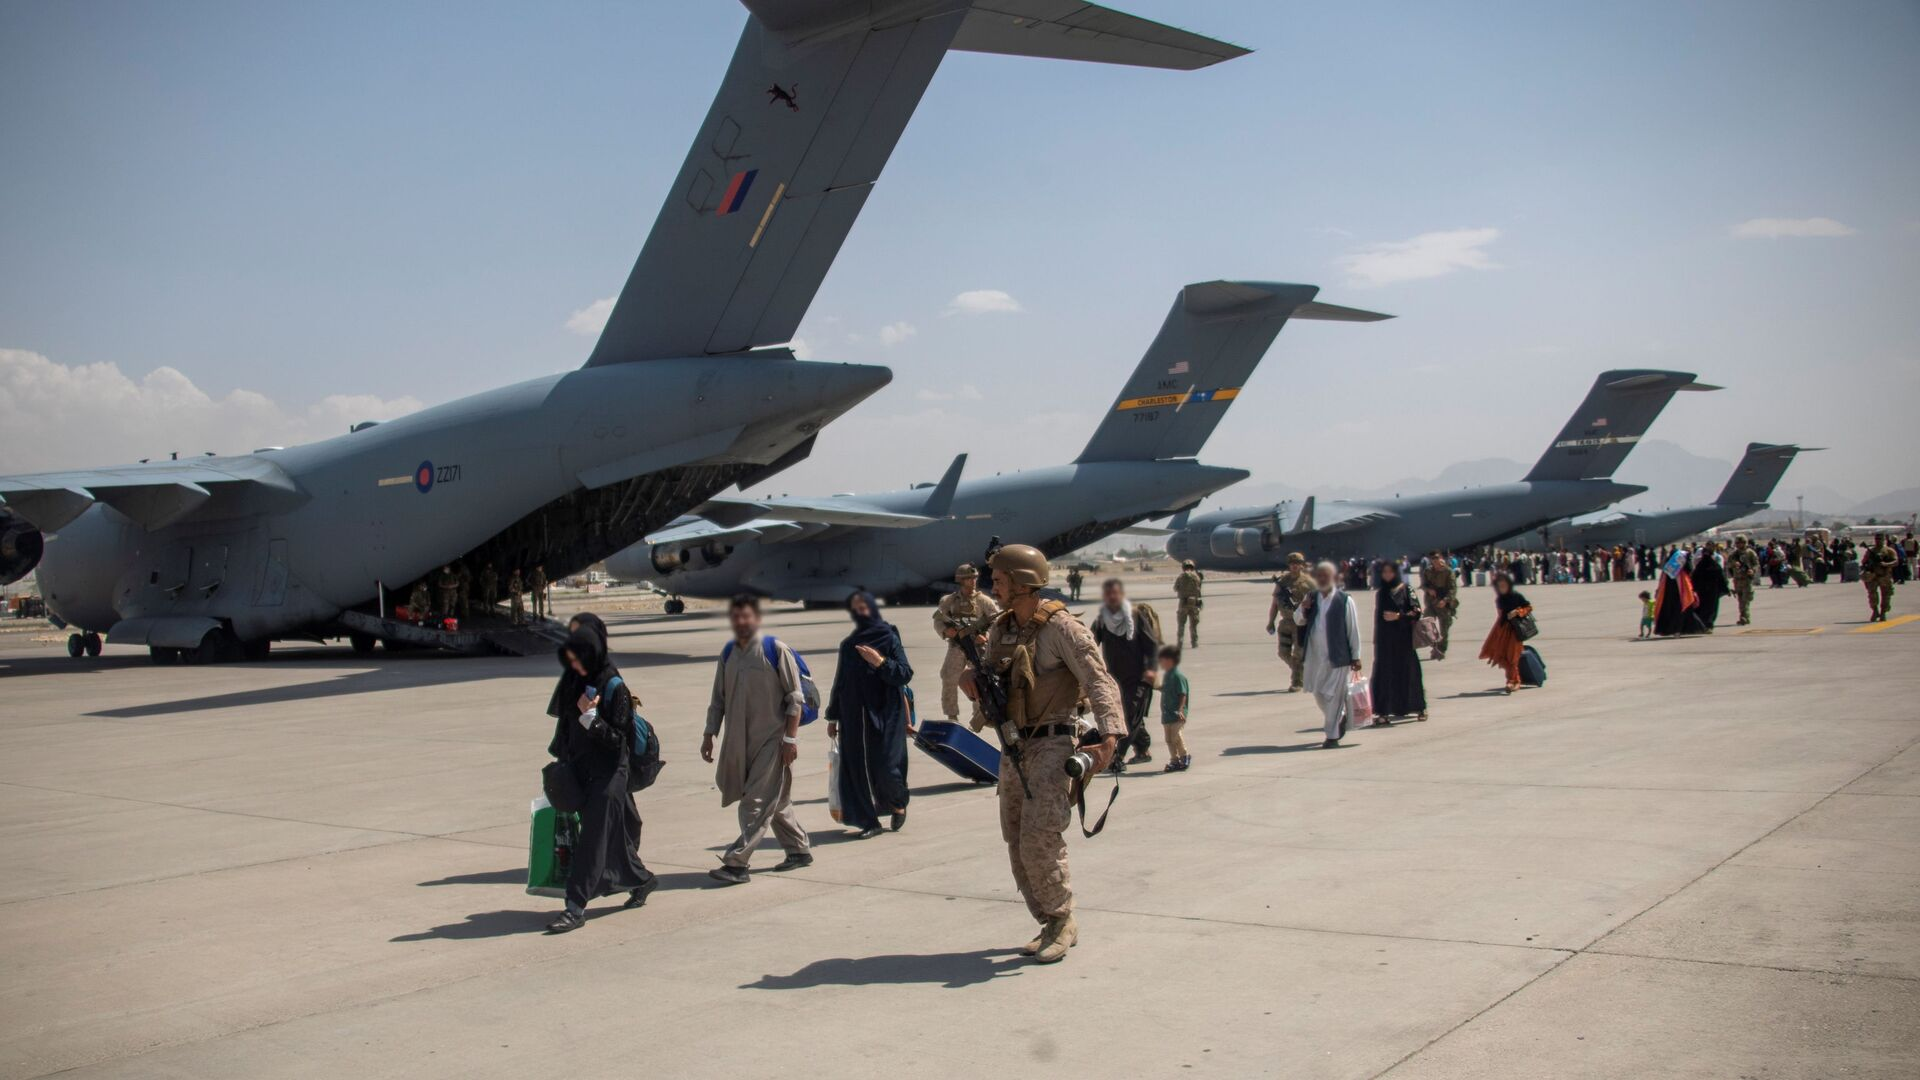 Members of the UK Armed Forces continue to take part in the evacuation of entitled personnel from Kabul airport, in Kabul, Afghanistan August 19-22, 2021, in this handout picture obtained by Reuters on August 23, 2021. LPhot Ben Shread/UK MOD Crown copyright 2021/Handout via REUTERS  THIS IMAGE HAS BEEN SUPPLIED BY A THIRD PARTY. MANDATORY CREDIT. NO RESALES. NO ARCHIVES. - Sputnik International, 1920, 24.08.2021